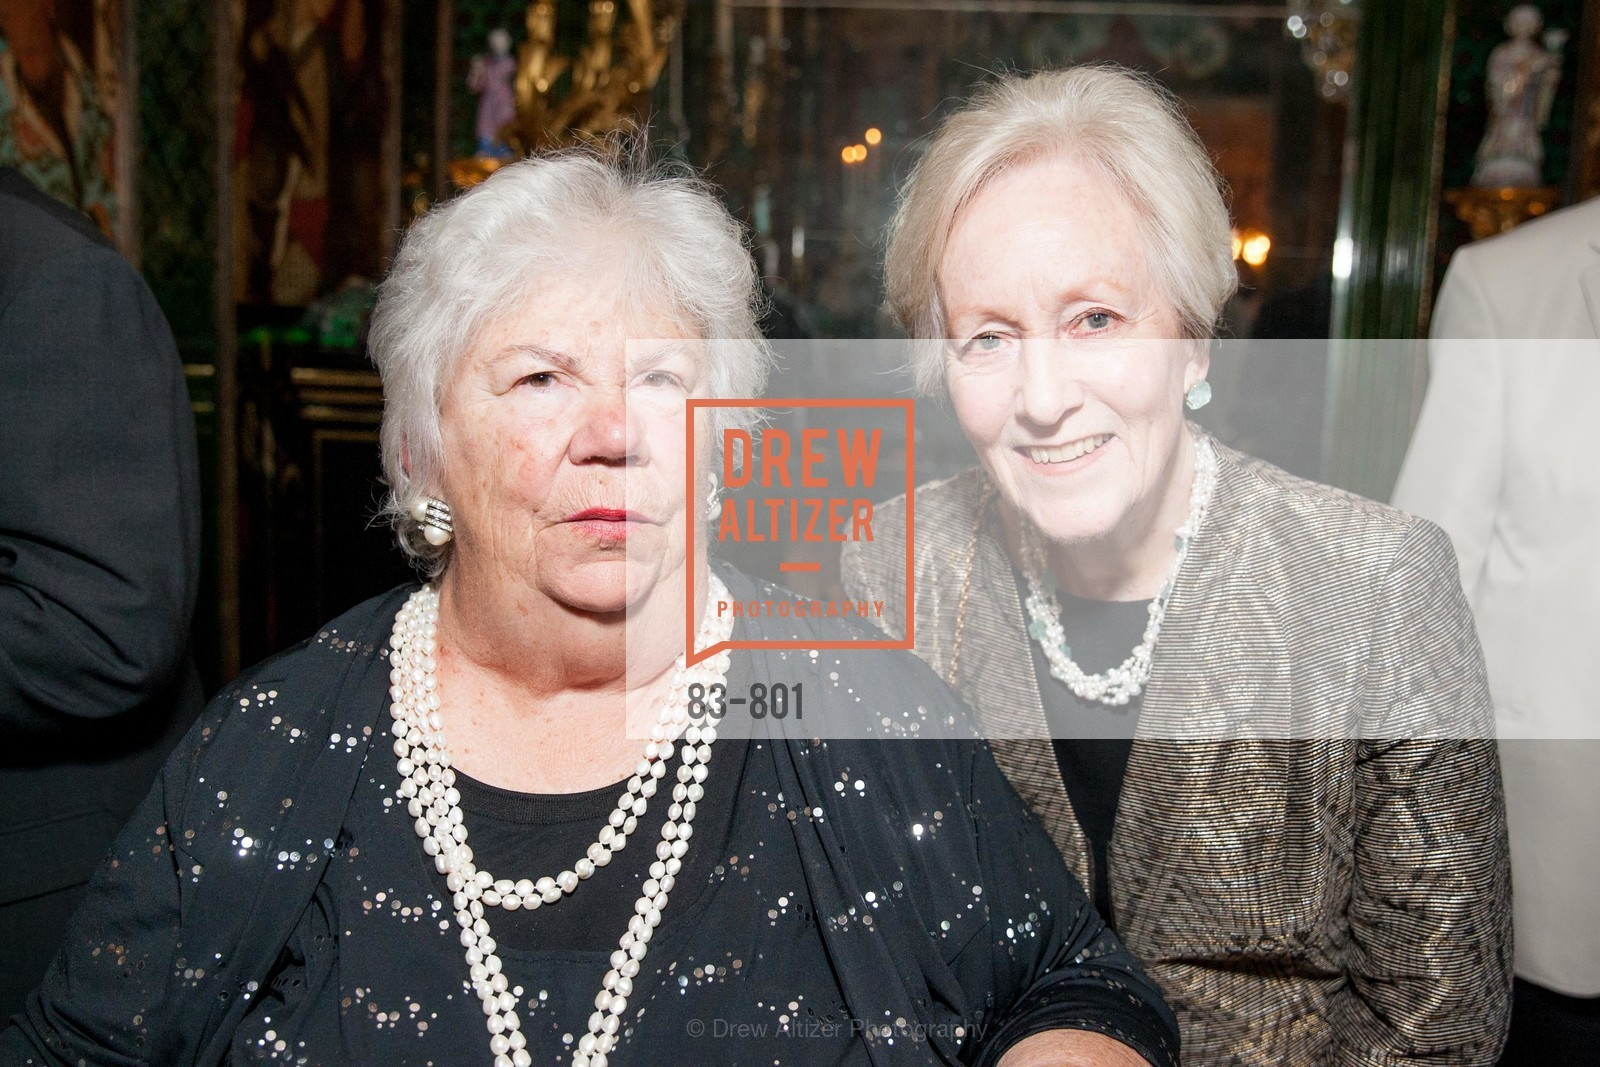 Diana Holt, Sally Gallagher, GETTY Hosts Leakey Foundation Dinner, US, April 24th, 2015,Drew Altizer, Drew Altizer Photography, full-service agency, private events, San Francisco photographer, photographer california